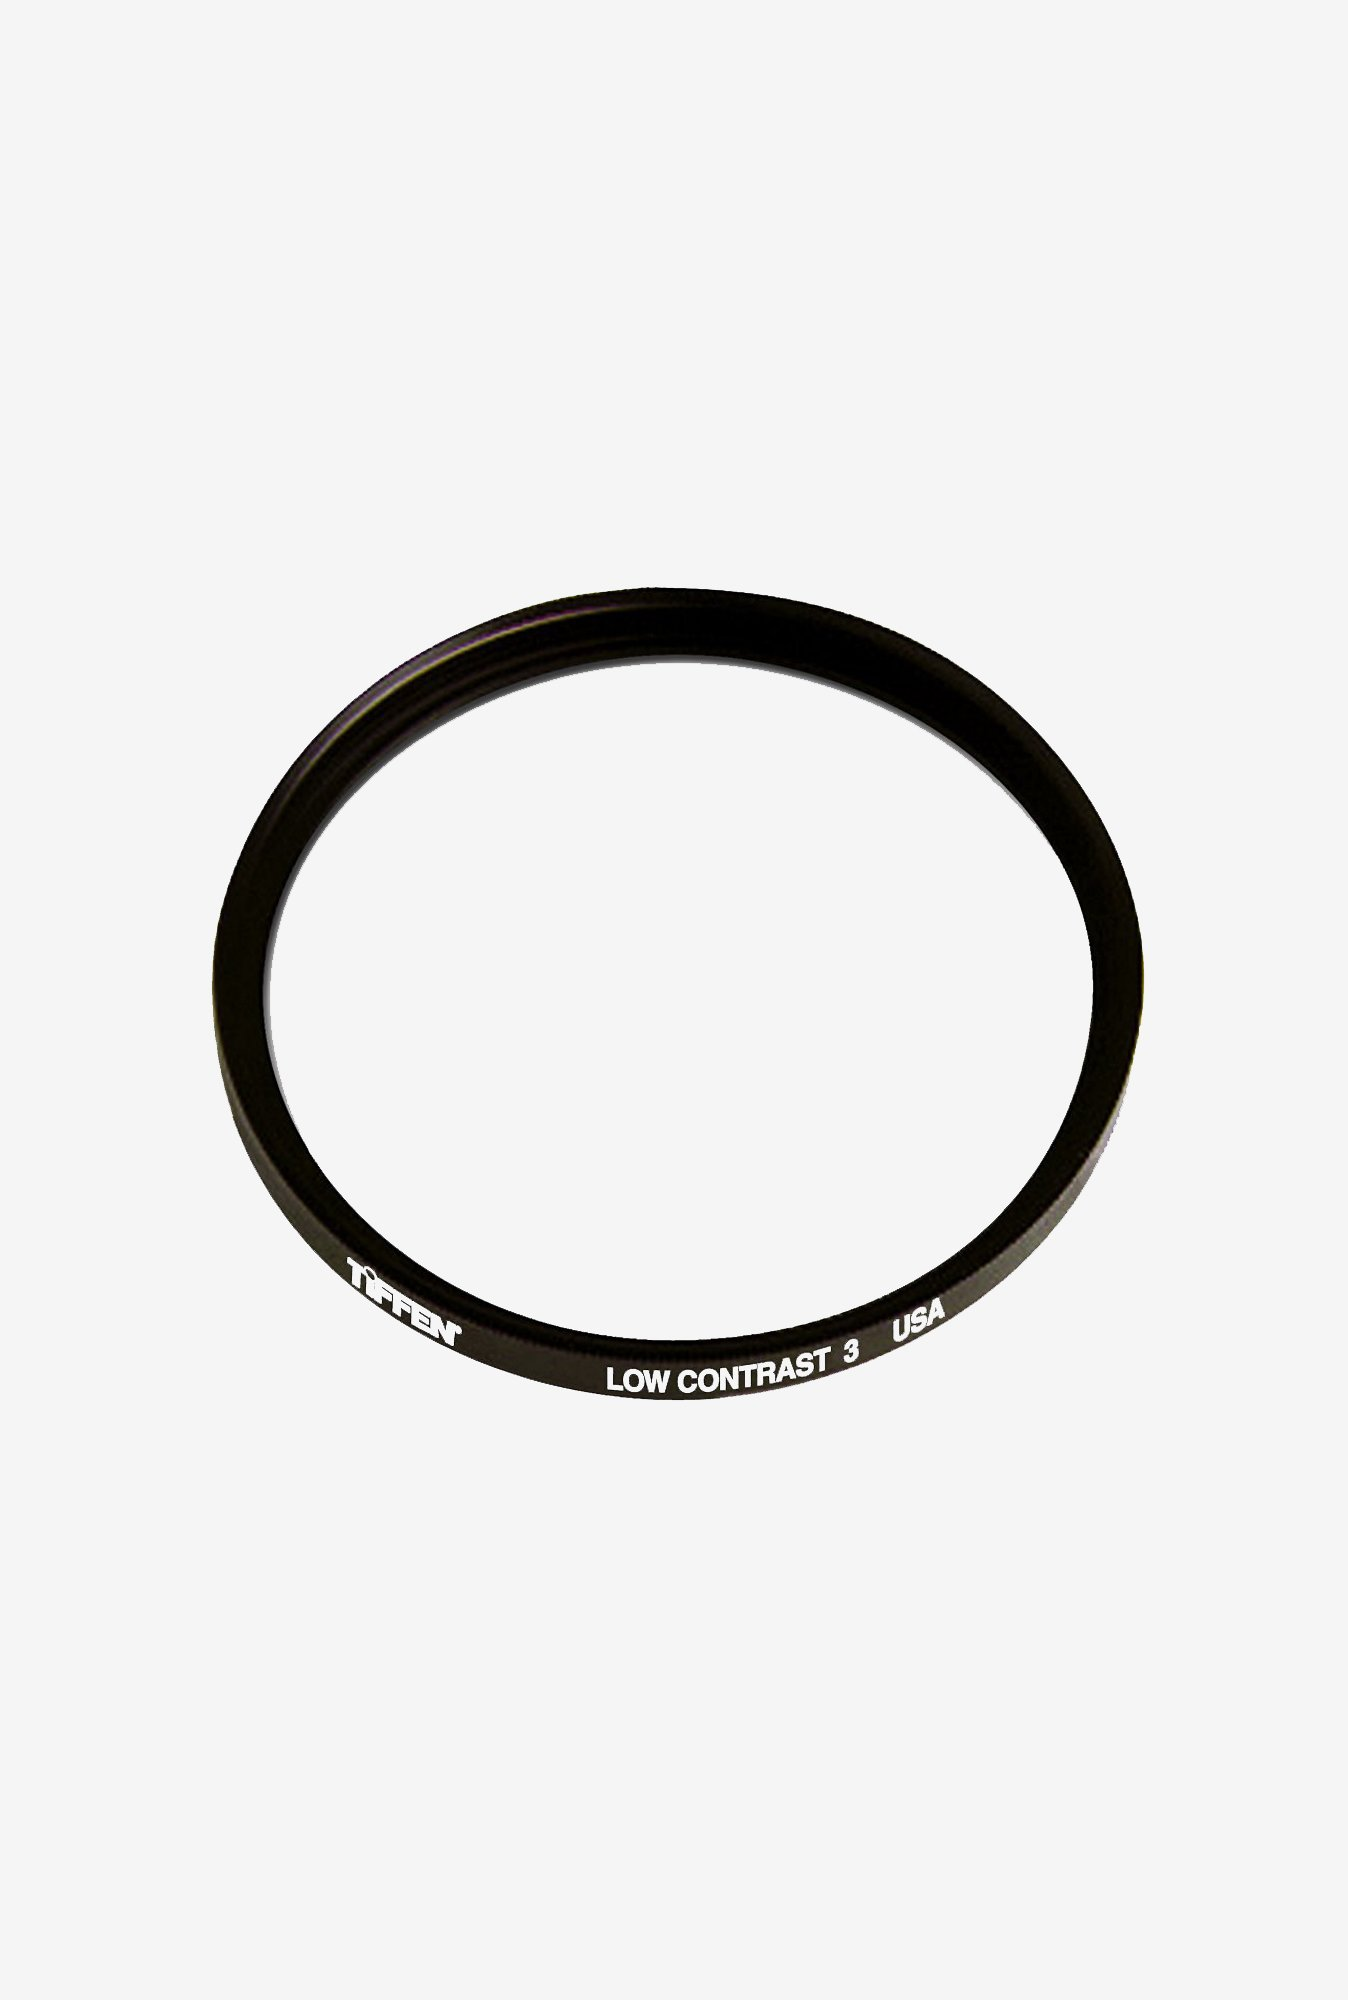 Tiffen 37LC3 37mm Low Contrast 3 Filter (Black)